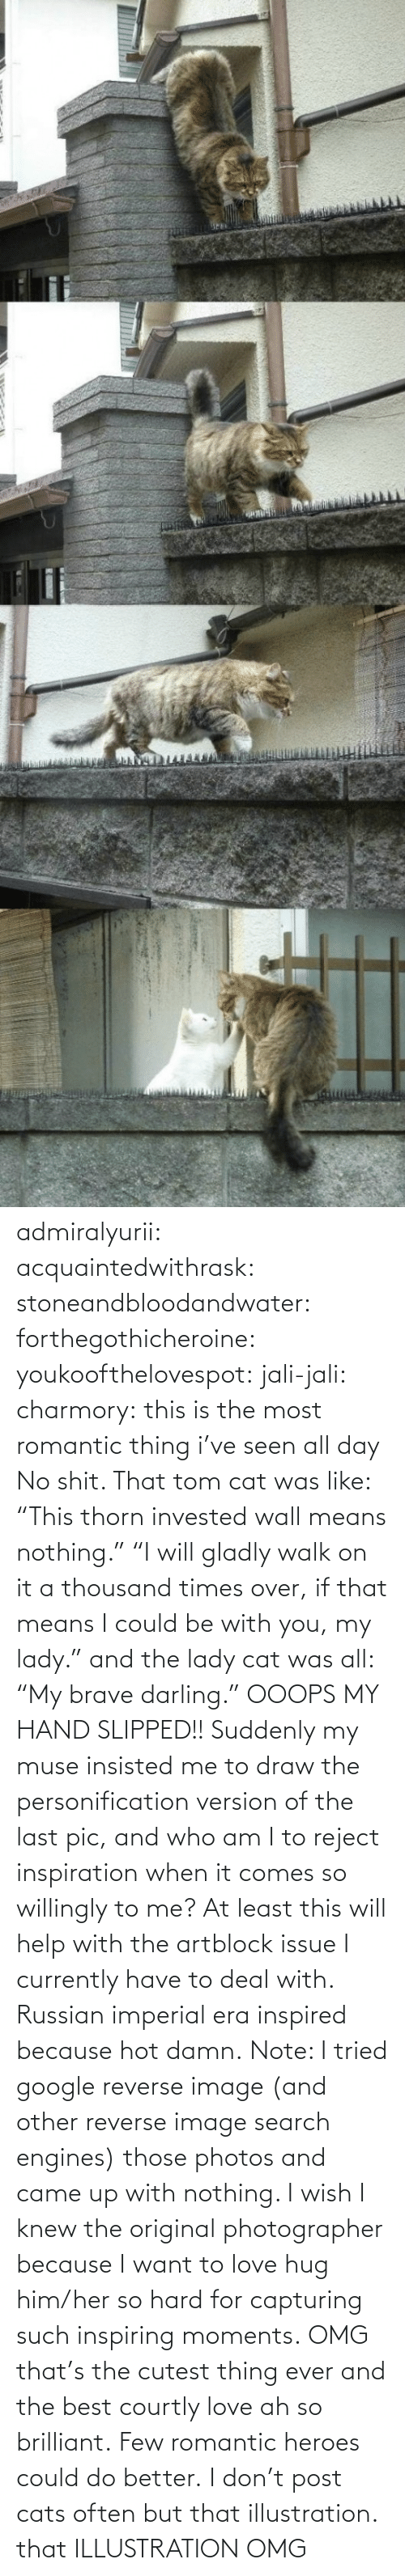 "era: admiralyurii: acquaintedwithrask:  stoneandbloodandwater:  forthegothicheroine:  youkoofthelovespot:  jali-jali:  charmory:  this is the most romantic thing i've seen all day  No shit. That tom cat was like: ""This thorn invested wall means nothing."" ""I will gladly walk on it a thousand times over, if that means I could be with you, my lady."" and the lady cat was all: ""My brave darling."" OOOPS MY HAND SLIPPED!!  Suddenly my muse insisted me to draw the personification version of the last pic, and who am I to reject inspiration when it comes so willingly to me? At least this will help with the artblock issue I currently have to deal with. Russian imperial era inspired because hot damn. Note: I tried google reverse image (and other reverse image search engines) those photos and came up with nothing. I wish I knew the original photographer because I want to love hug him/her so hard for capturing such inspiring moments.  OMG that's the cutest thing ever and the best courtly love ah so brilliant.  Few romantic heroes could do better.  I don't post cats often but that illustration.  that ILLUSTRATION    OMG"